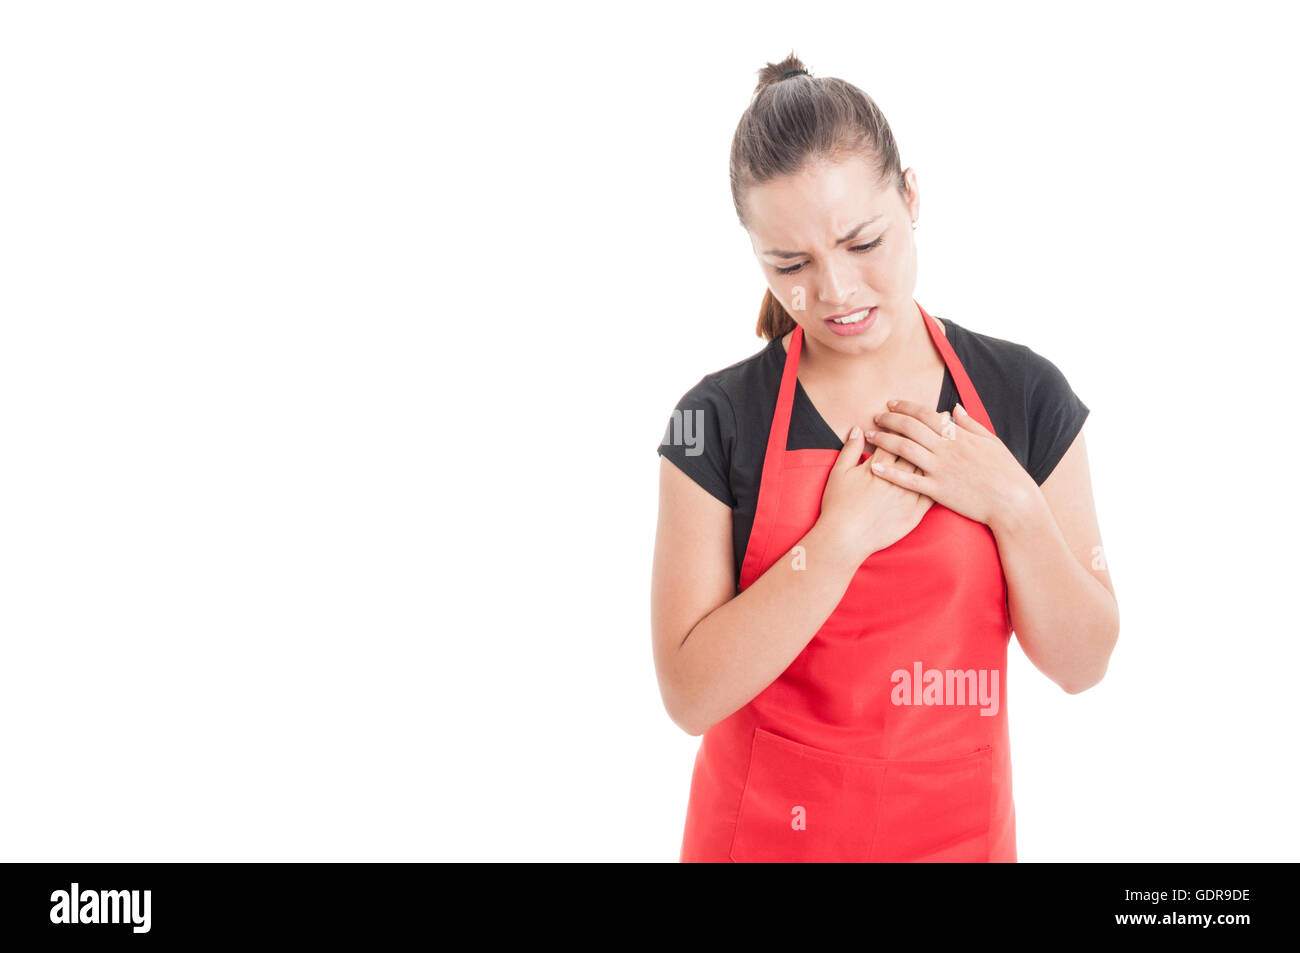 Stressed young employee having chest pain as cardiac disease concept isolated on white background with copy space - Stock Image